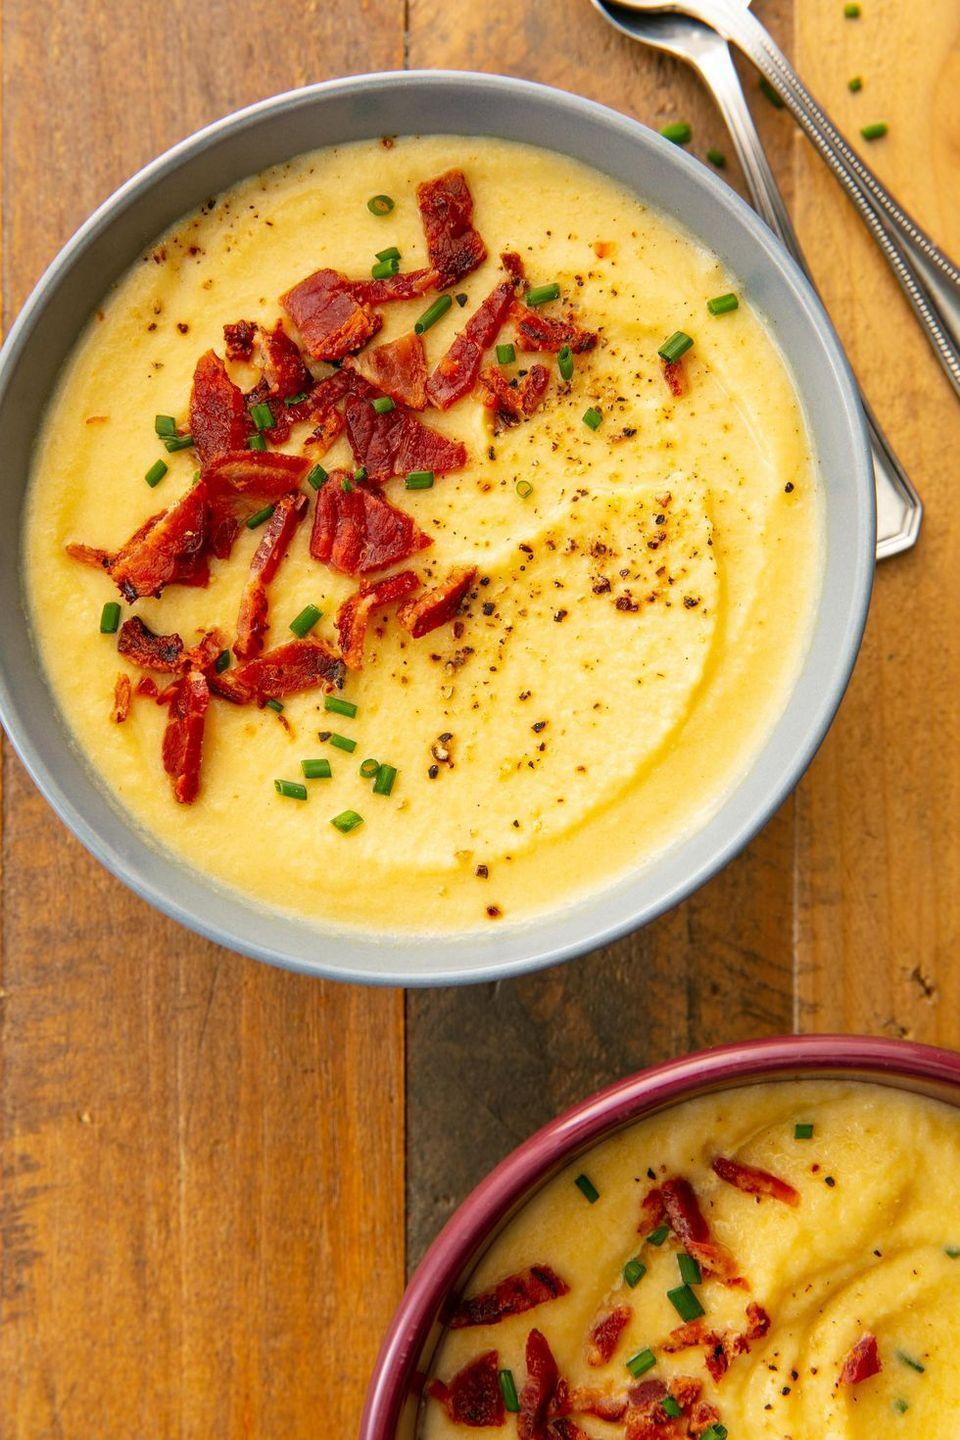 "<p>If you cook from our recipes, you know our love for cauliflower is strong. This soup is the perfect easy autumn dinner when you want to warm up. Vegetarian? Skip the bacon.</p><p>Get the <a href=""https://www.delish.com/uk/cooking/recipes/a28785652/cauliflower-leek-soup/"" rel=""nofollow noopener"" target=""_blank"" data-ylk=""slk:Cauliflower Leek Soup"" class=""link rapid-noclick-resp"">Cauliflower Leek Soup</a> recipe.</p>"